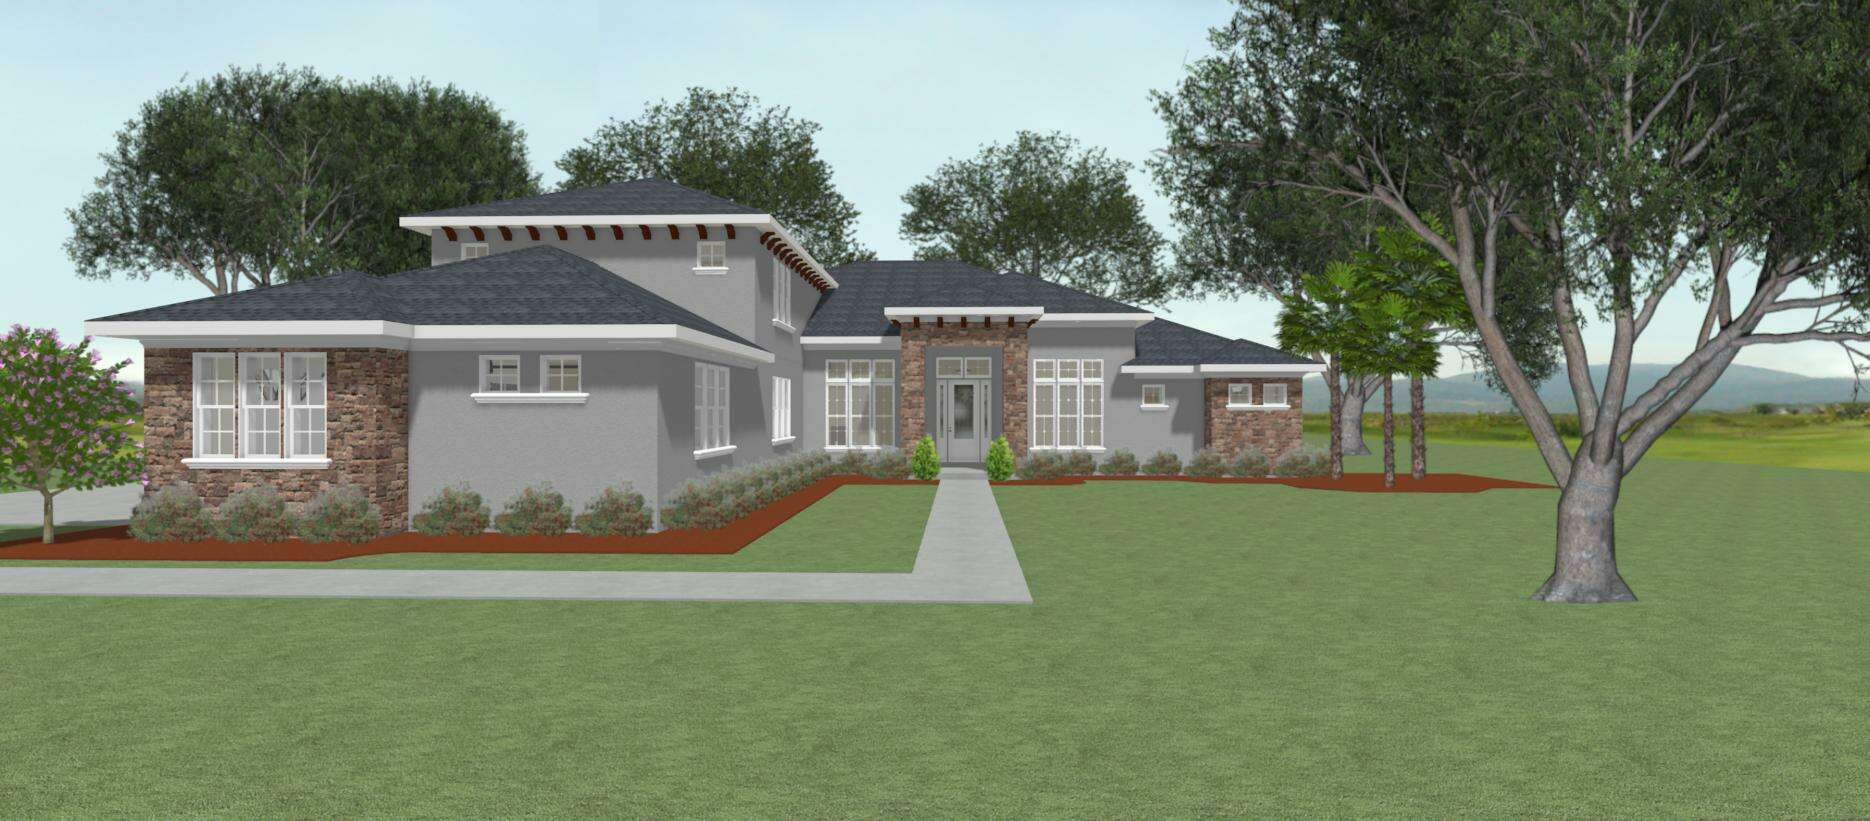 Single Family for Sale at 4544 Claire Rose Court Mount Dora, Florida 32757 United States